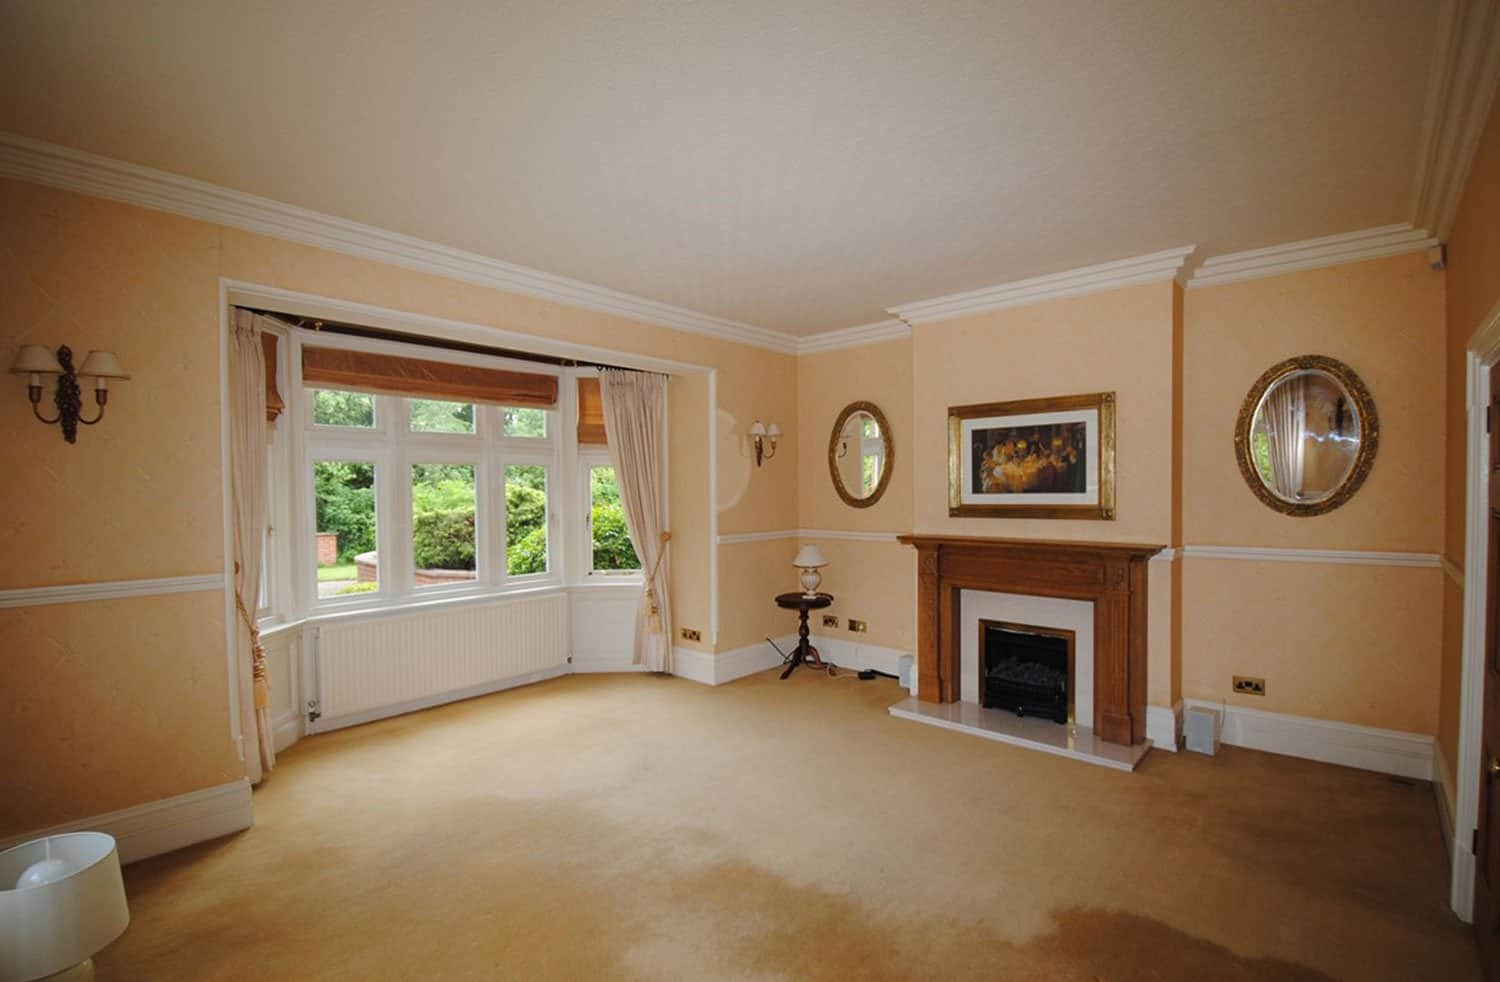 LL_Case-Study_The-Old-Vicarage_0017_Picture27